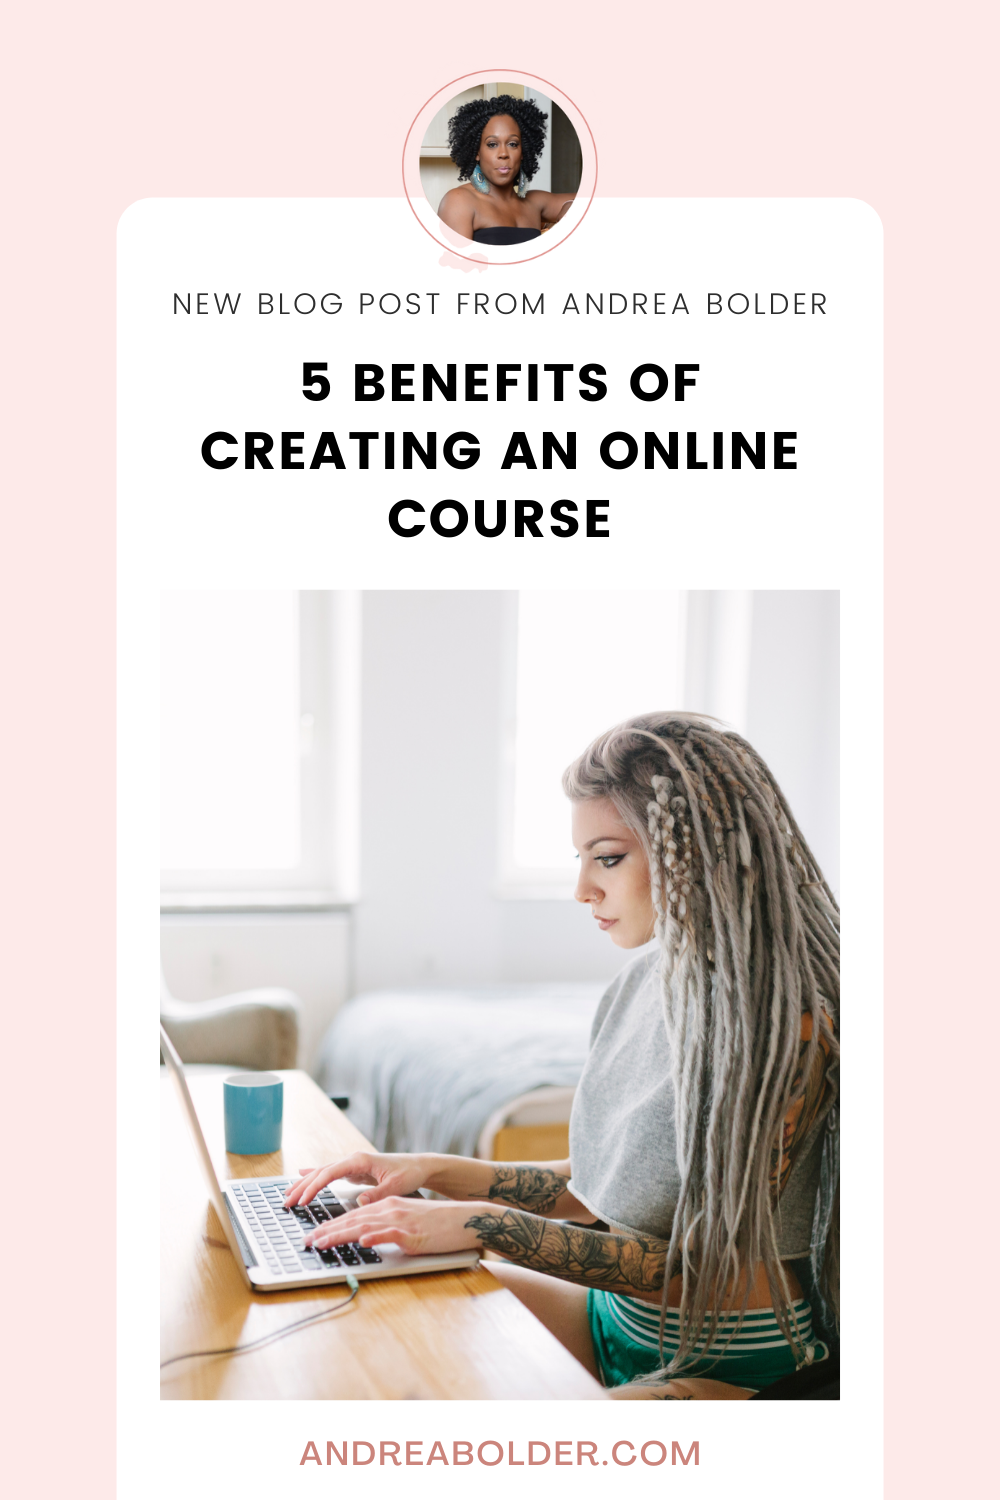 5 Benefits of Creating an Online Course